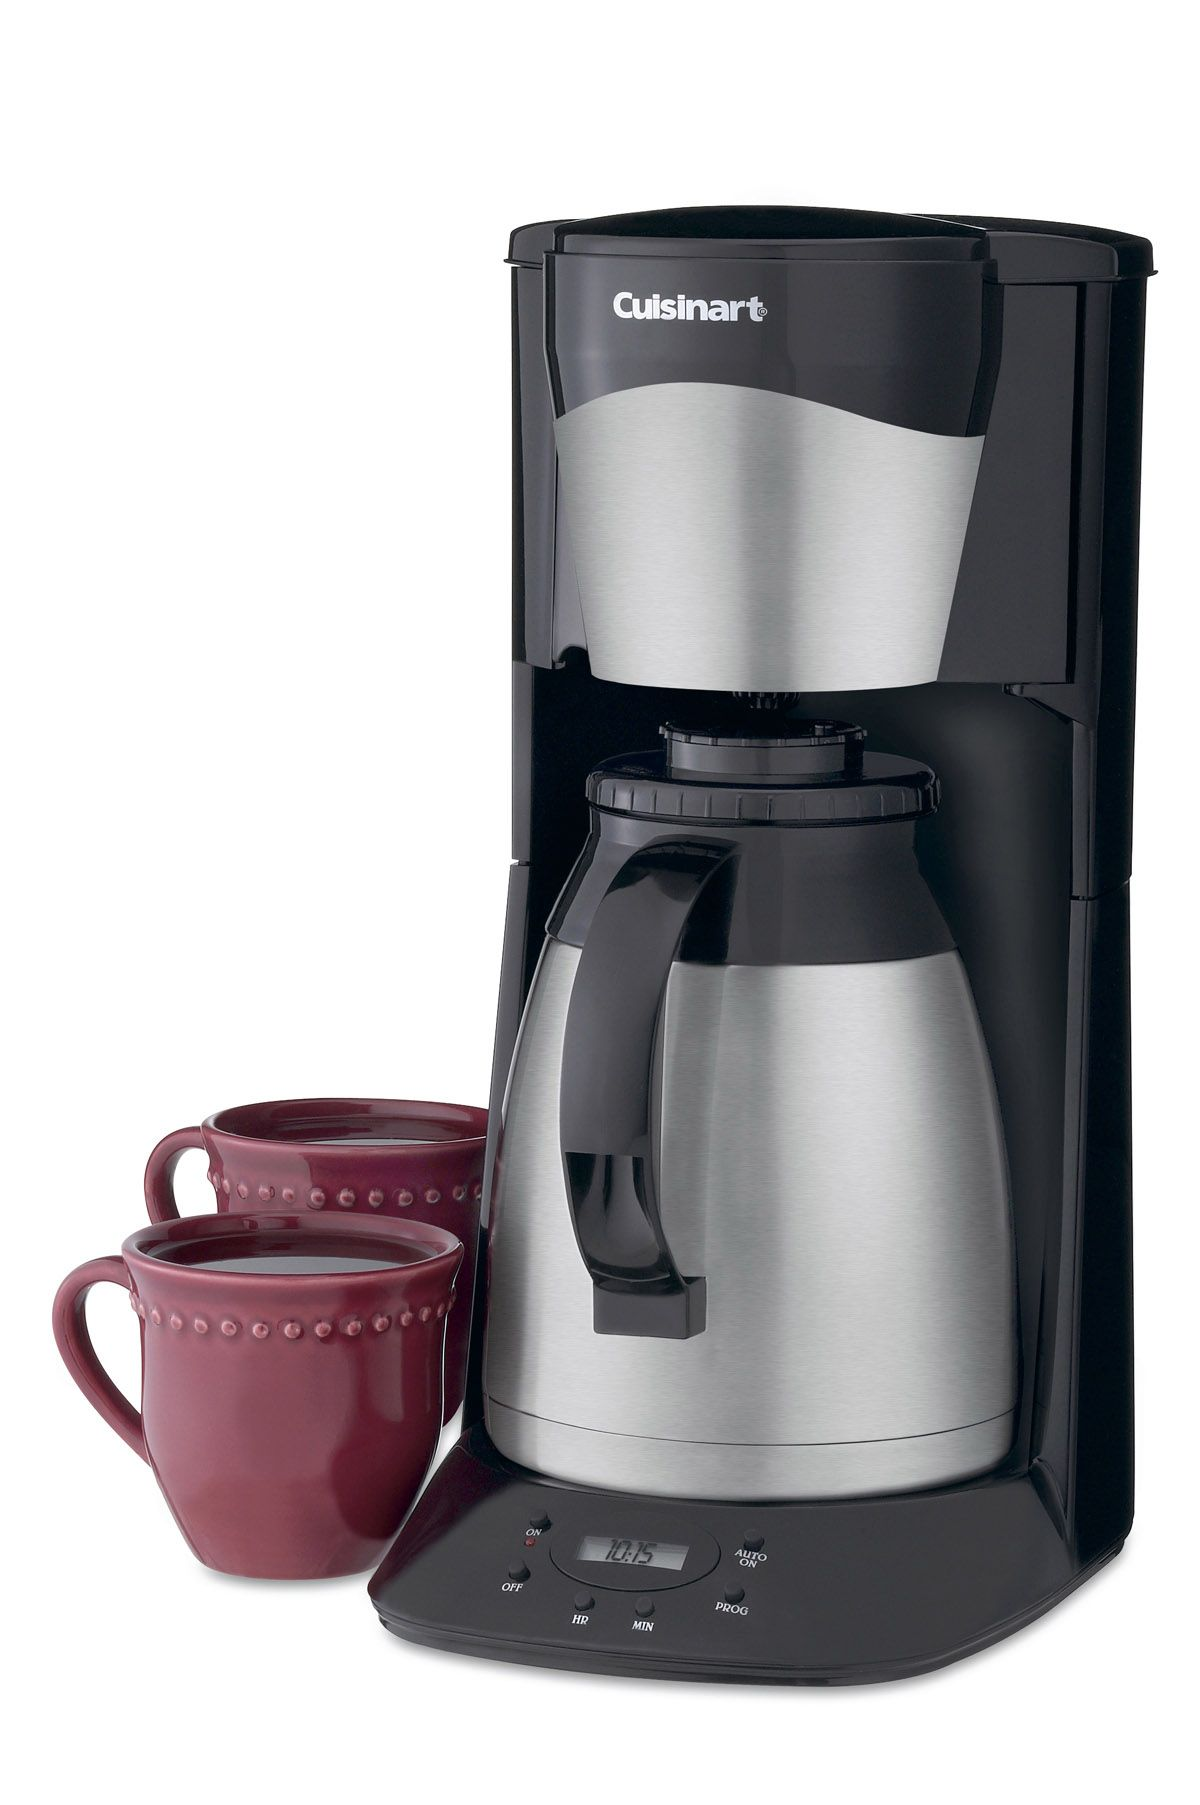 Cuisinart DTC-975BKN 12-Cup Programmable Thermal Coffeemaker